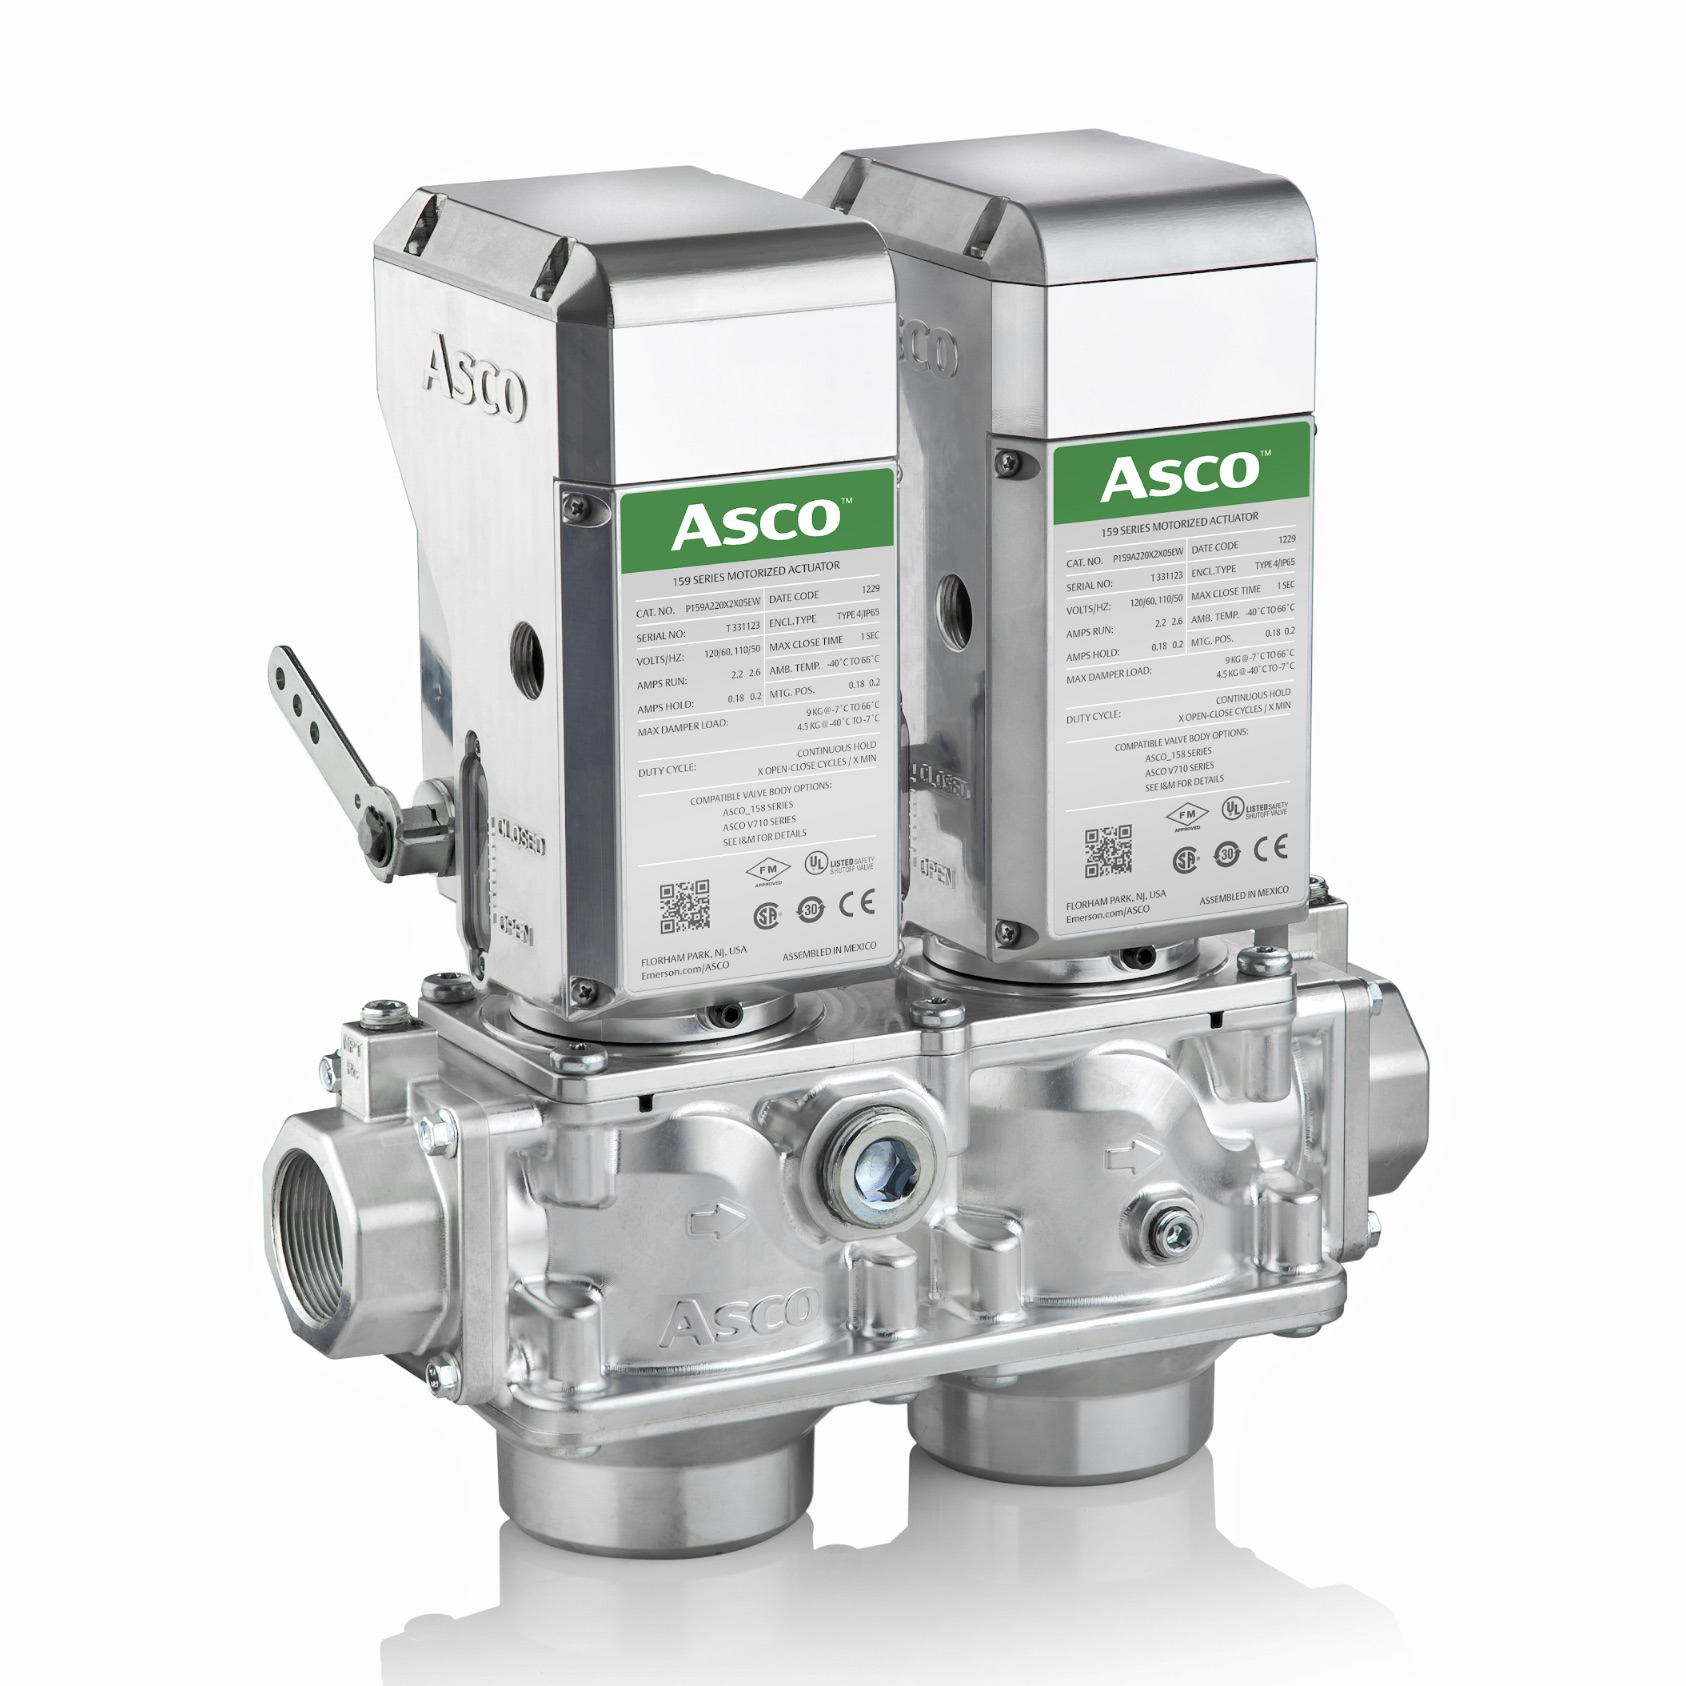 ASCO series Emerson gas valve